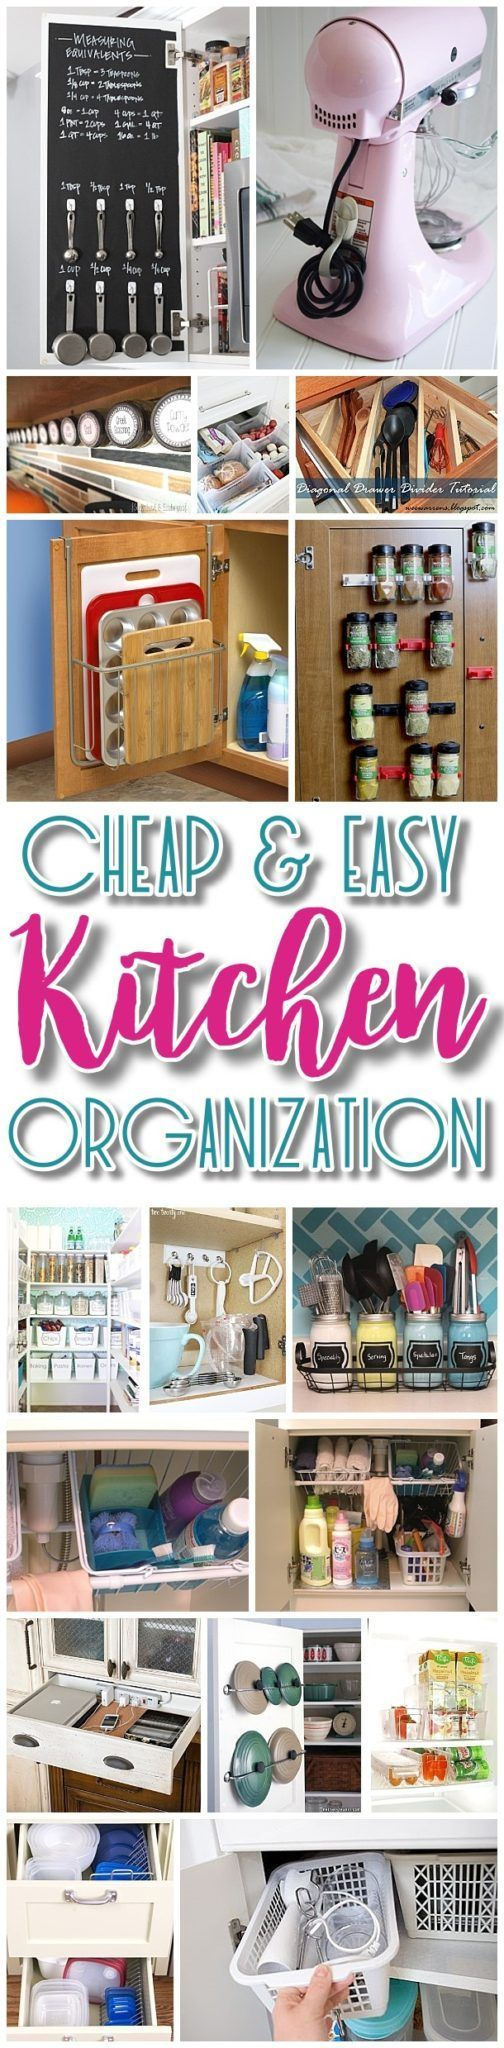 Easy and Budget Friendly Ways to Organize your Kitchen - Hacks, Ideas, Space Sav...